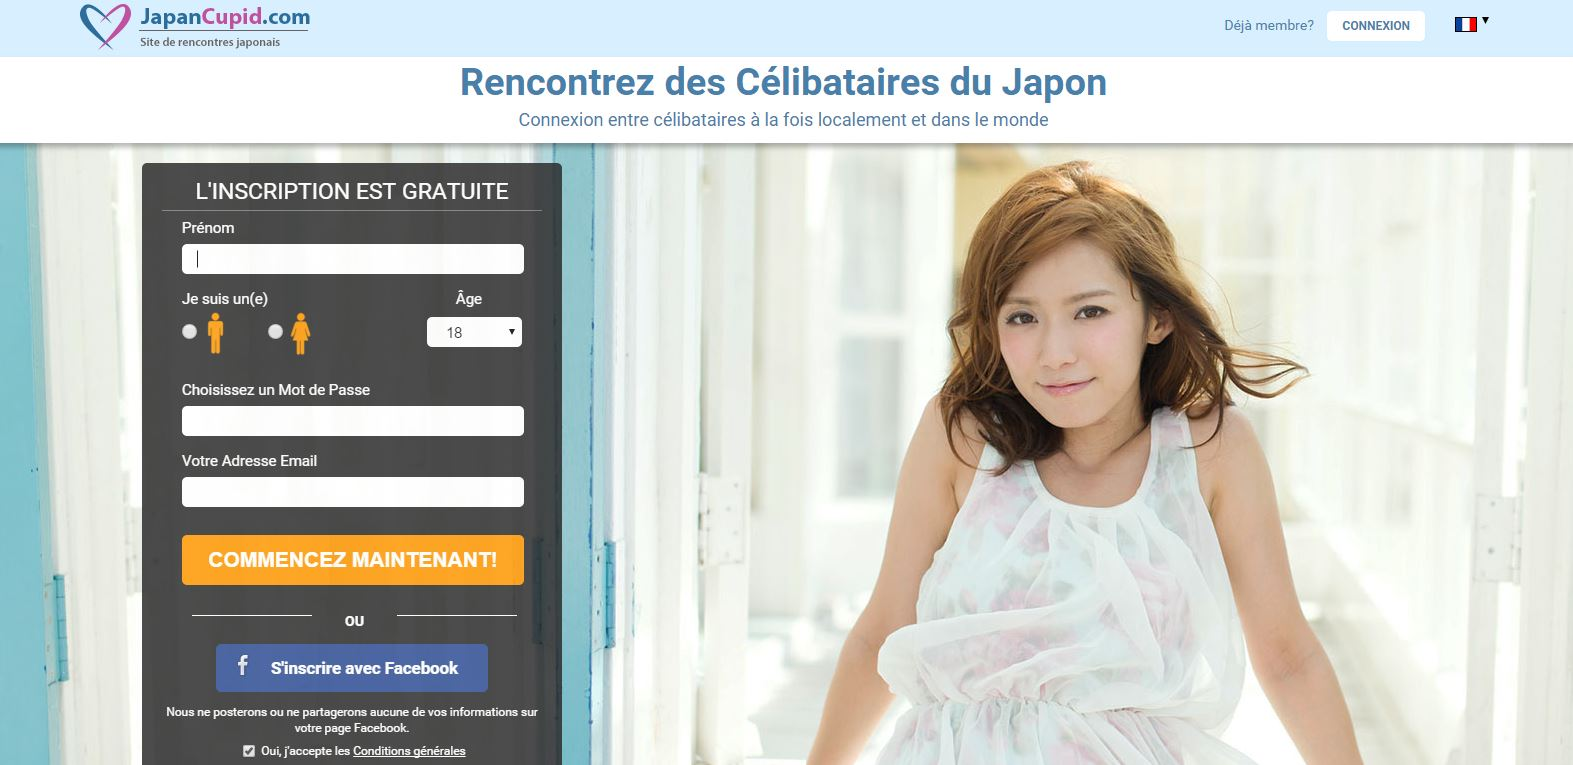 Site de rencontre japonaise en france